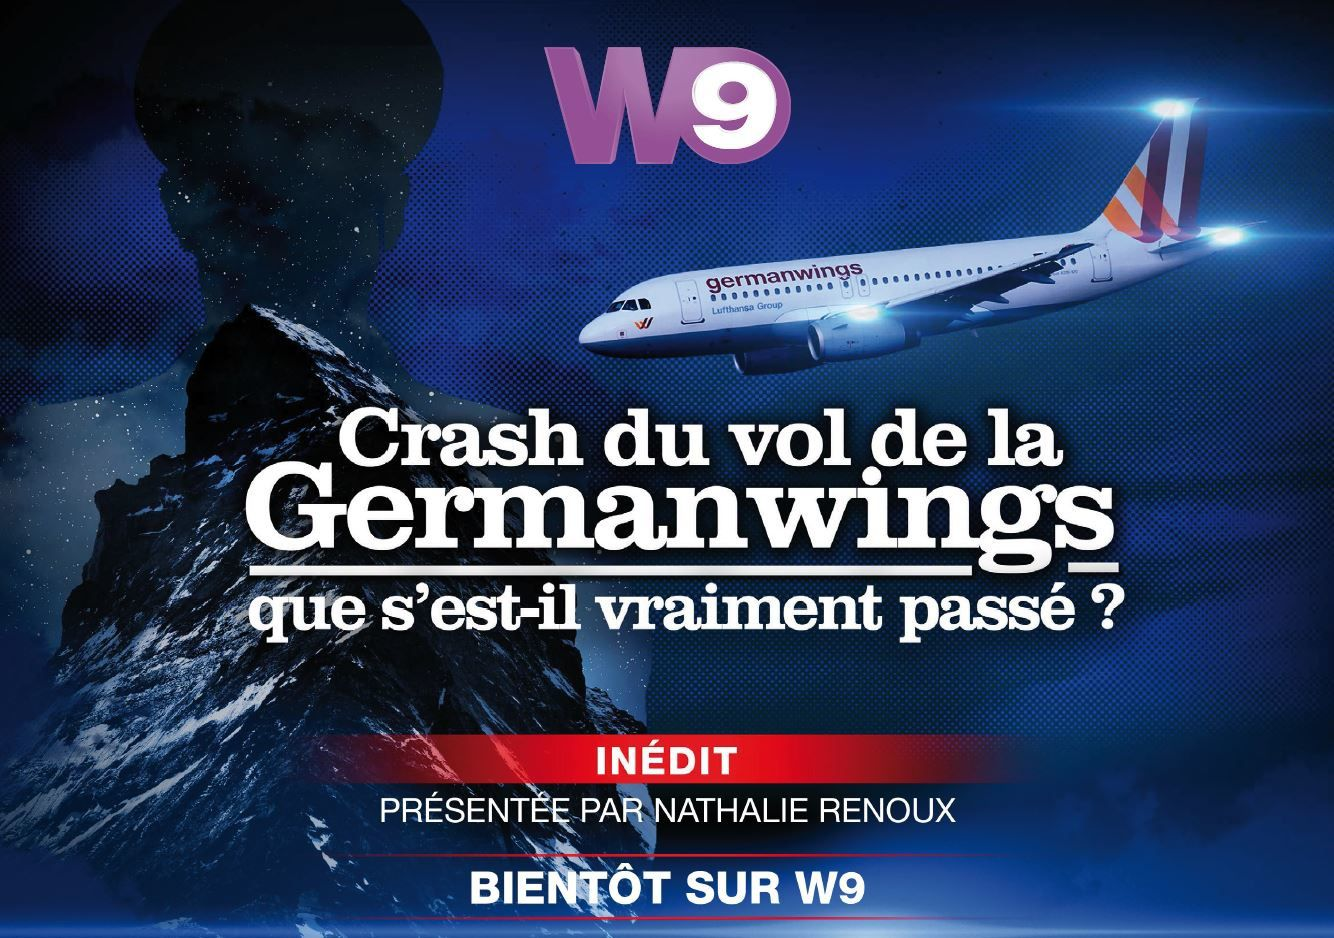 Crash du vol de la Germanwings : documentaire inédit le 15 mars sur W9.